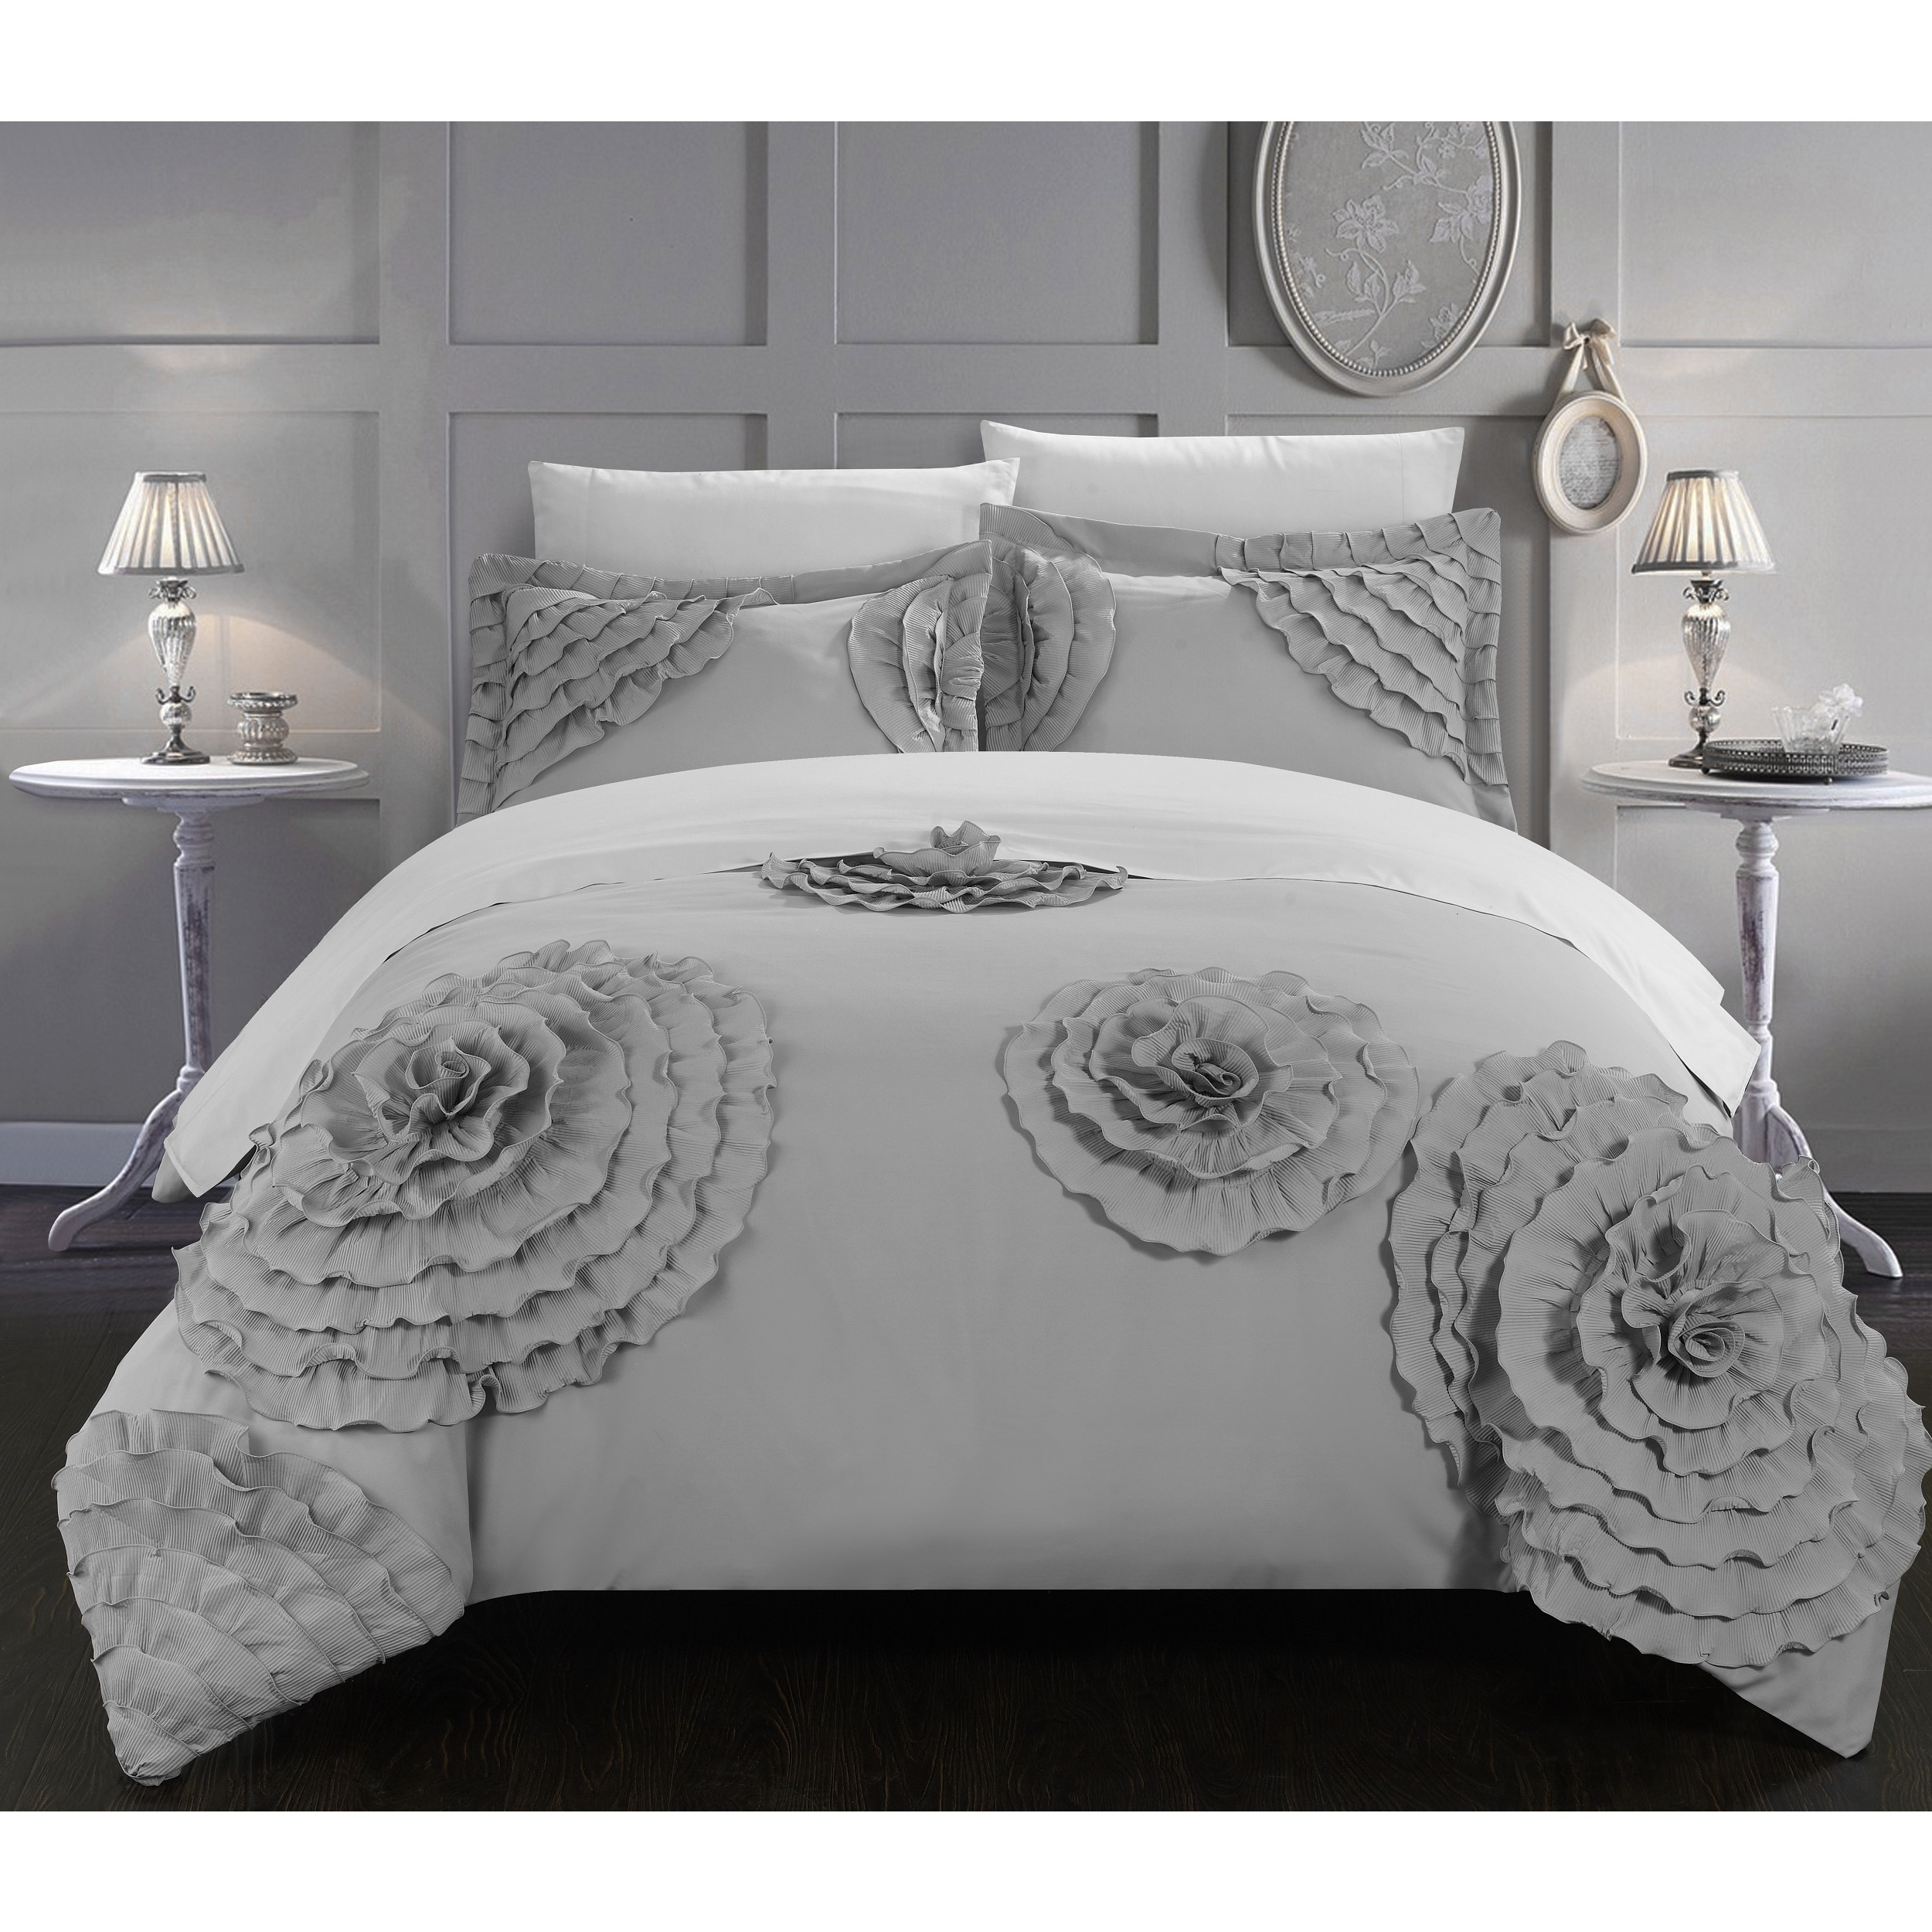 Chic Home 7-Piece Marissa Silver Floral and Rose Applique Duvet Cover Set